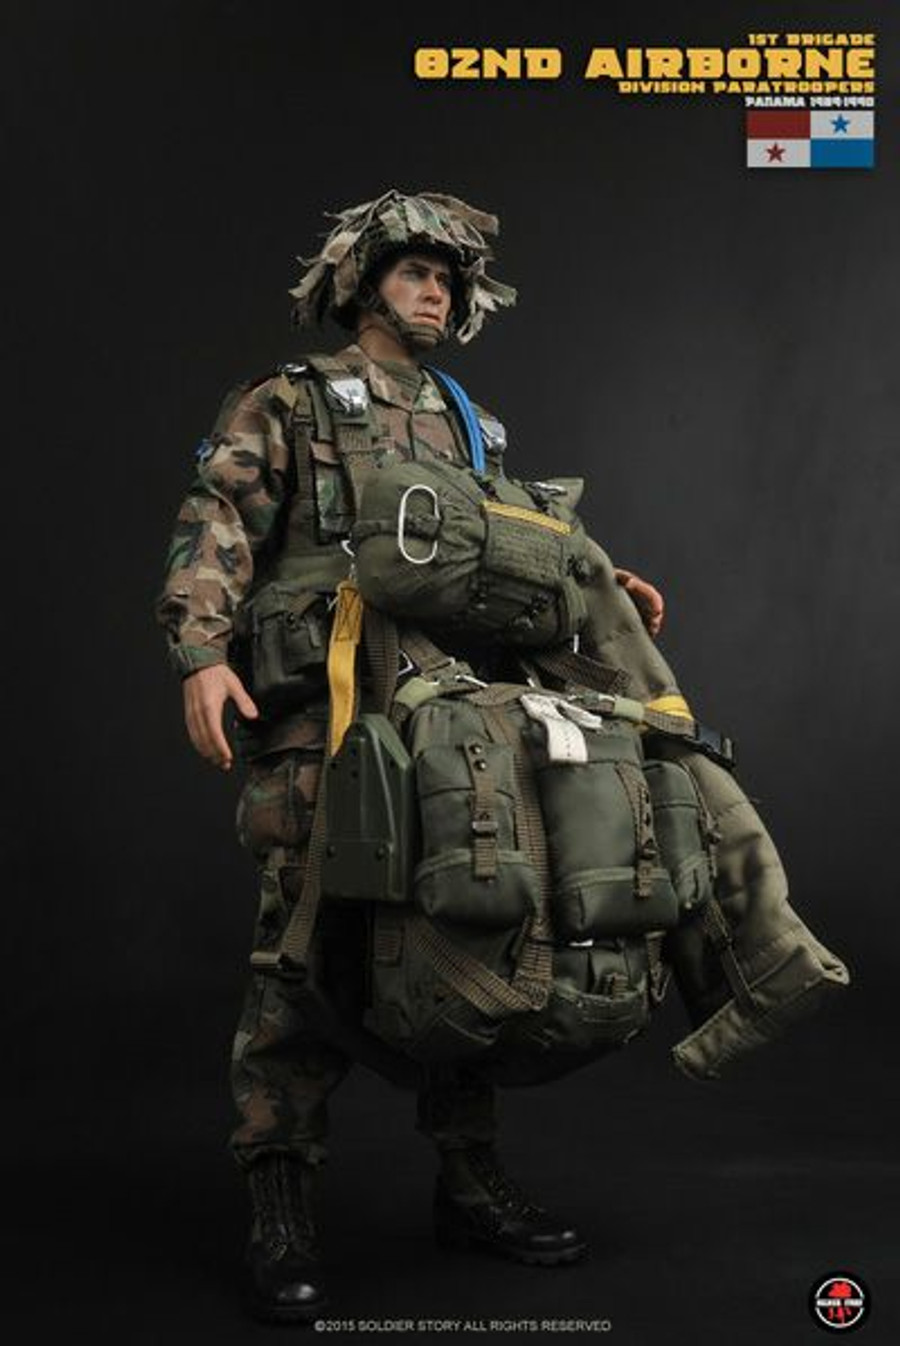 Soldier Story- SS089 - 1st Brigade, 82nd Airborne Division Paratroopers